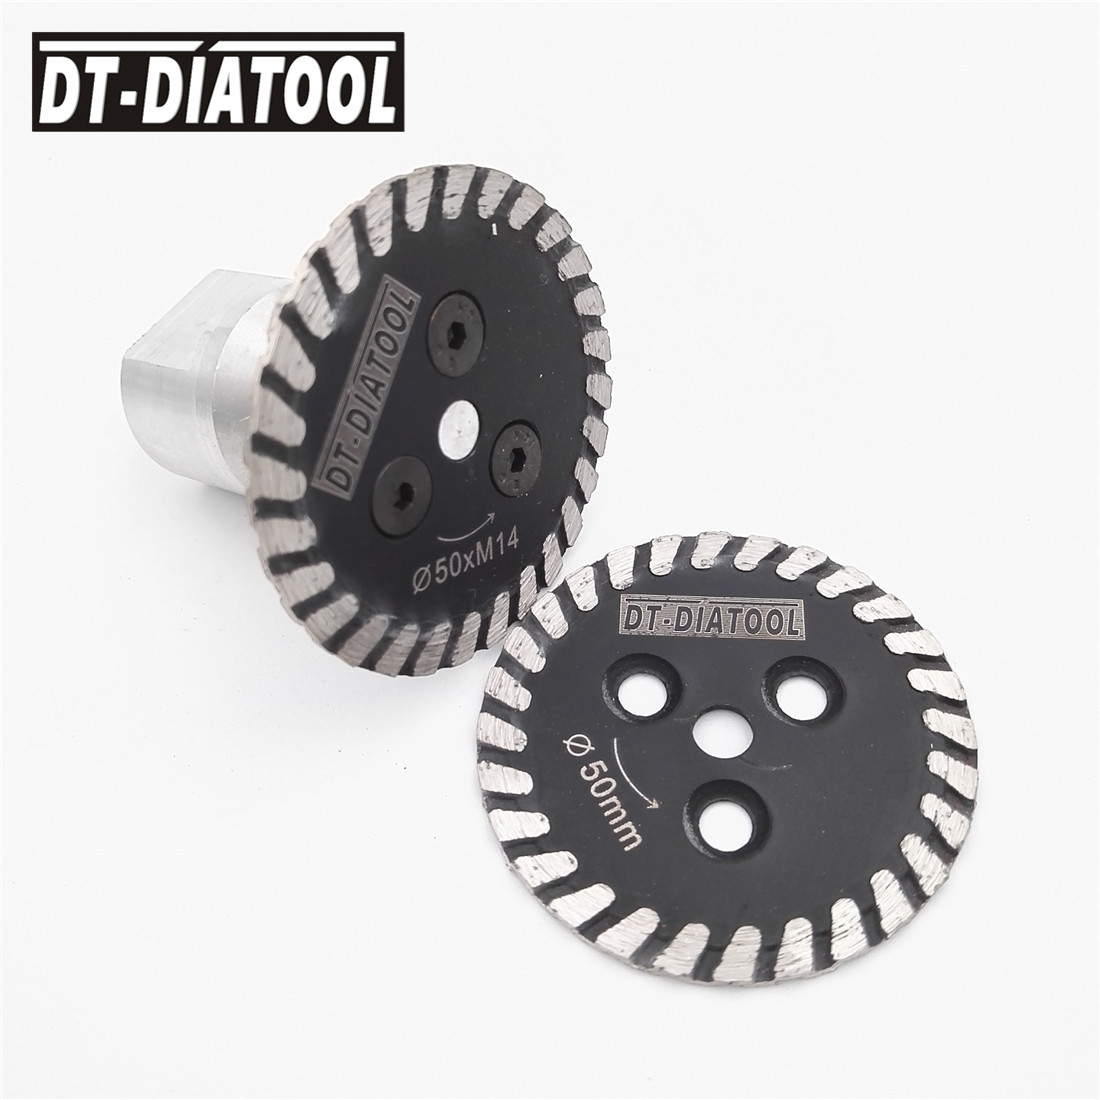 DT-DIATOOL 2pcs Mini Diamond Cutting Disc Hot Pressed Saw Blade 1pc Removable M14 Flange Carving Stone Marble Concrete